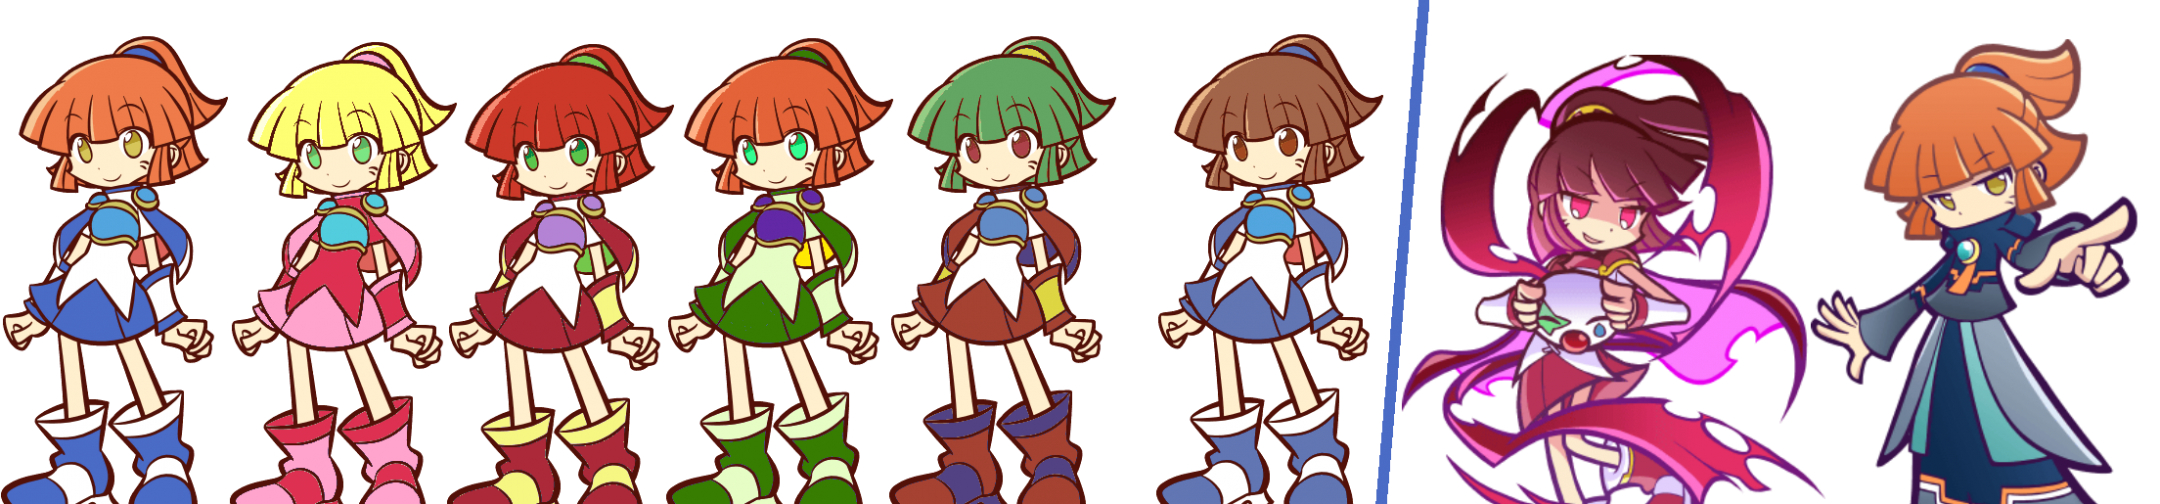 arle colors ver 2.png